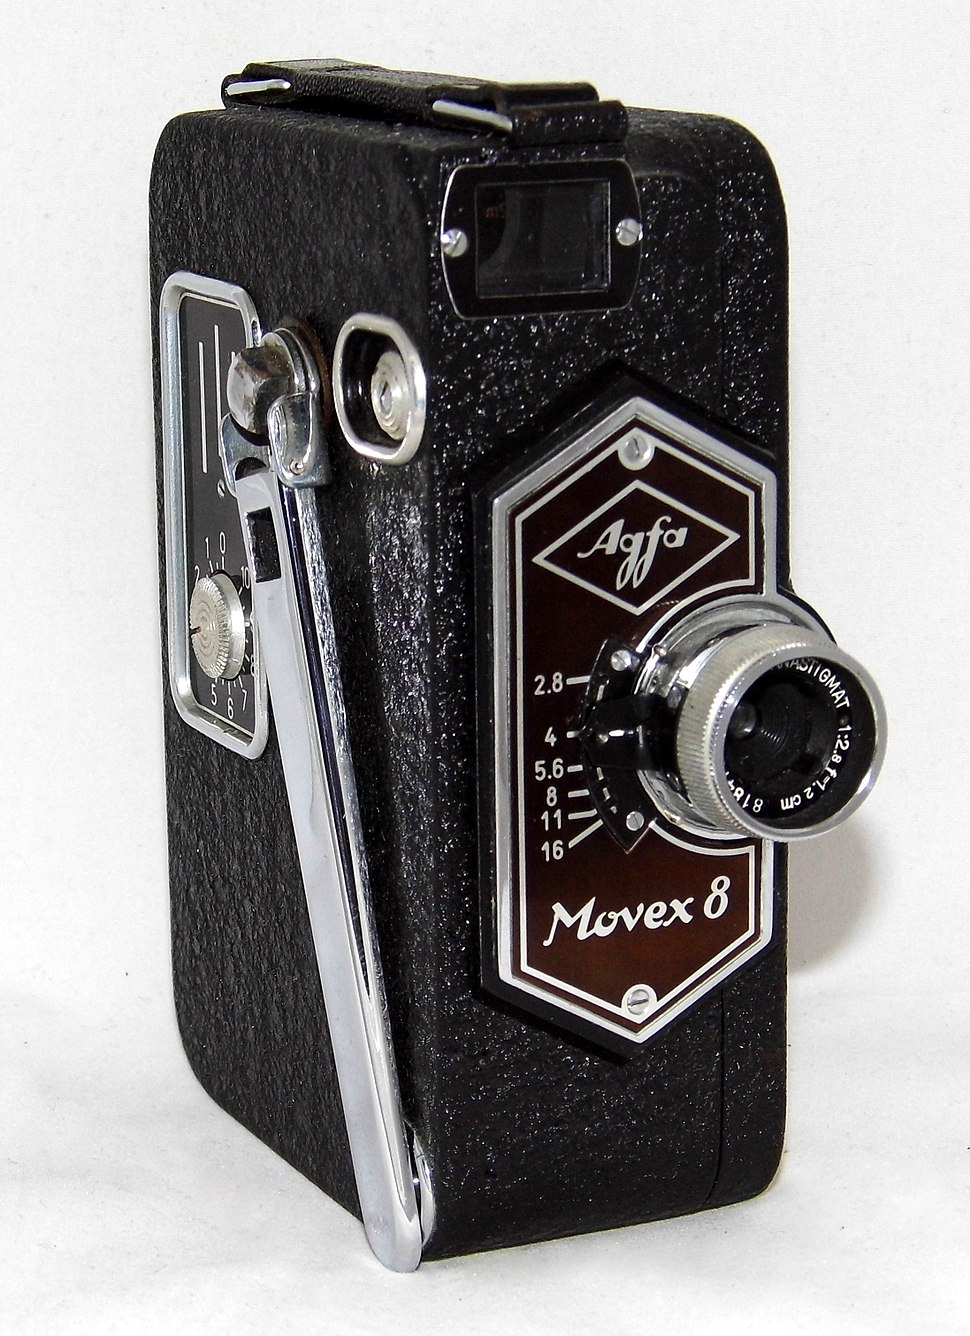 Vintage Agfa Movex 8 Movie Camera, The First Single-8 Camera To Use Film In A Cartridge, Made In Germany, Circa 1937 (21179067050)